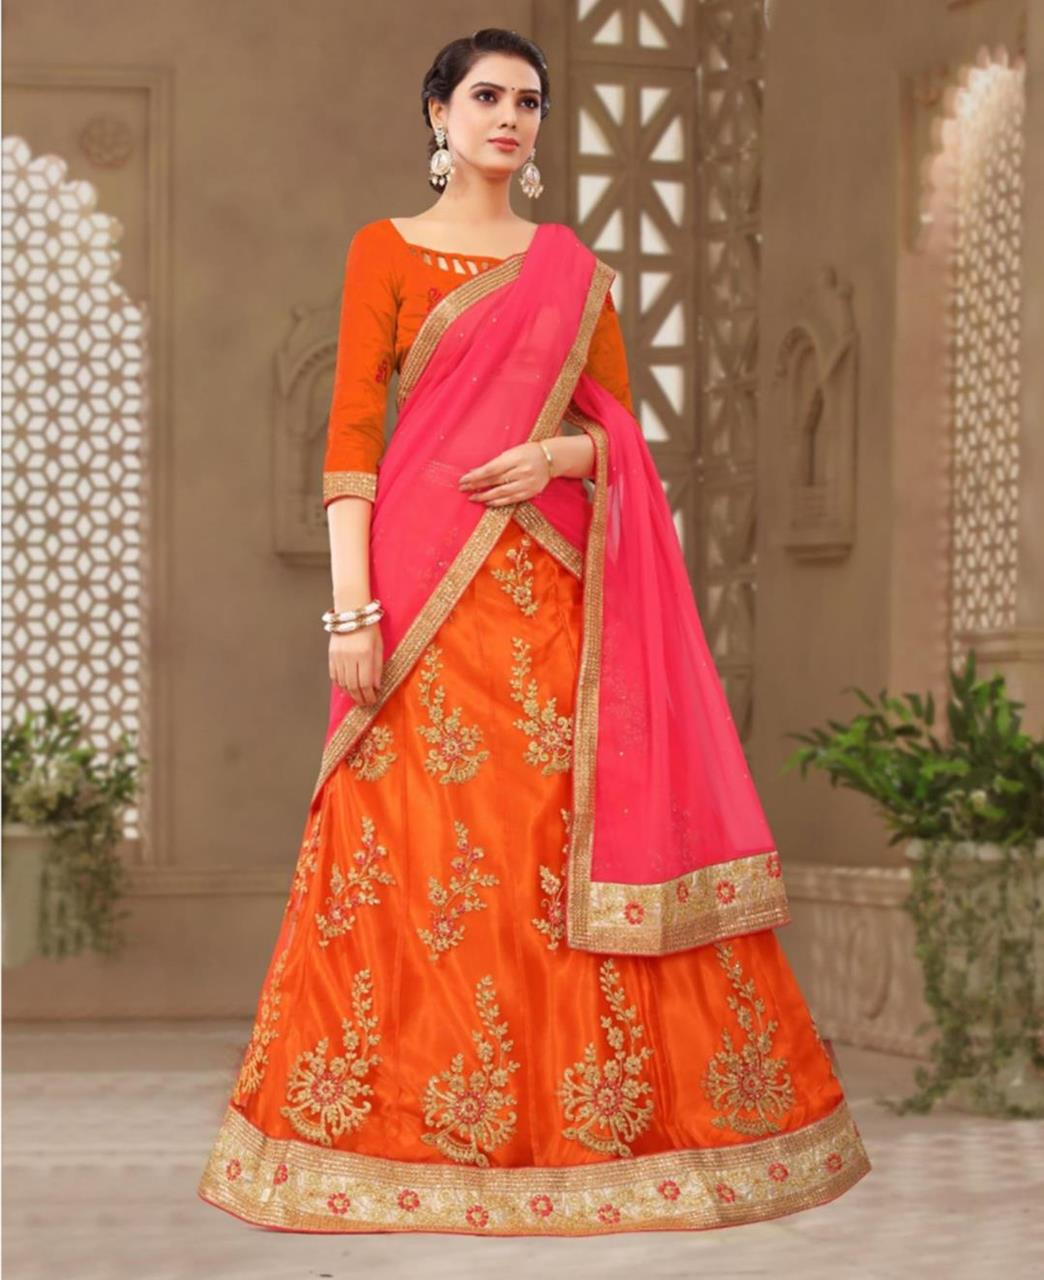 Embroidered Net Orange Circular Lehenga Choli Ghagra